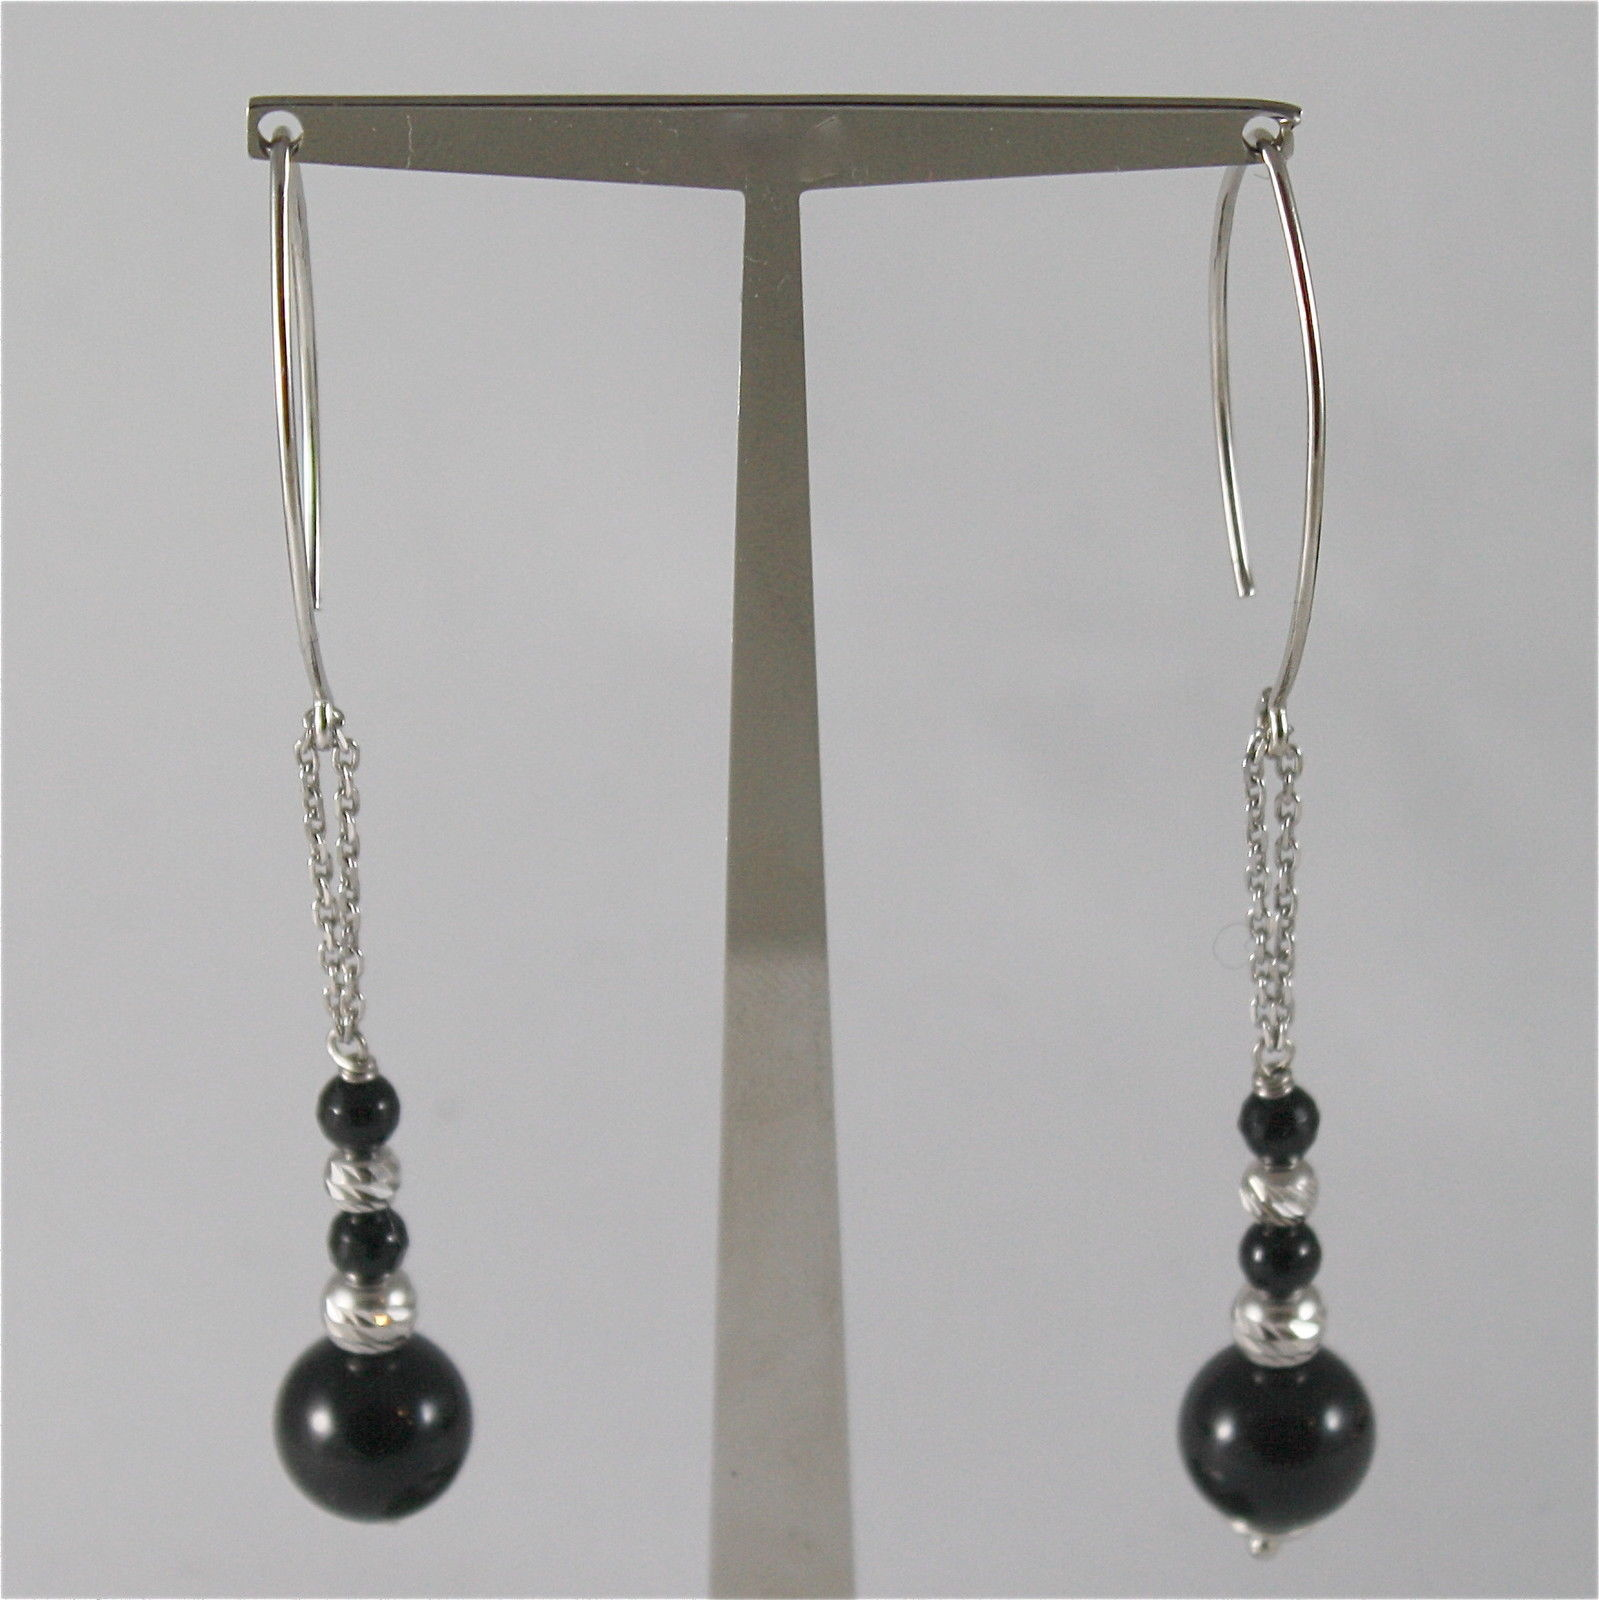 925 SILVER EARRINGS WITH 8 MM ROUND ONYX AND FACETED BALLS ITALIAN JEWELLERY